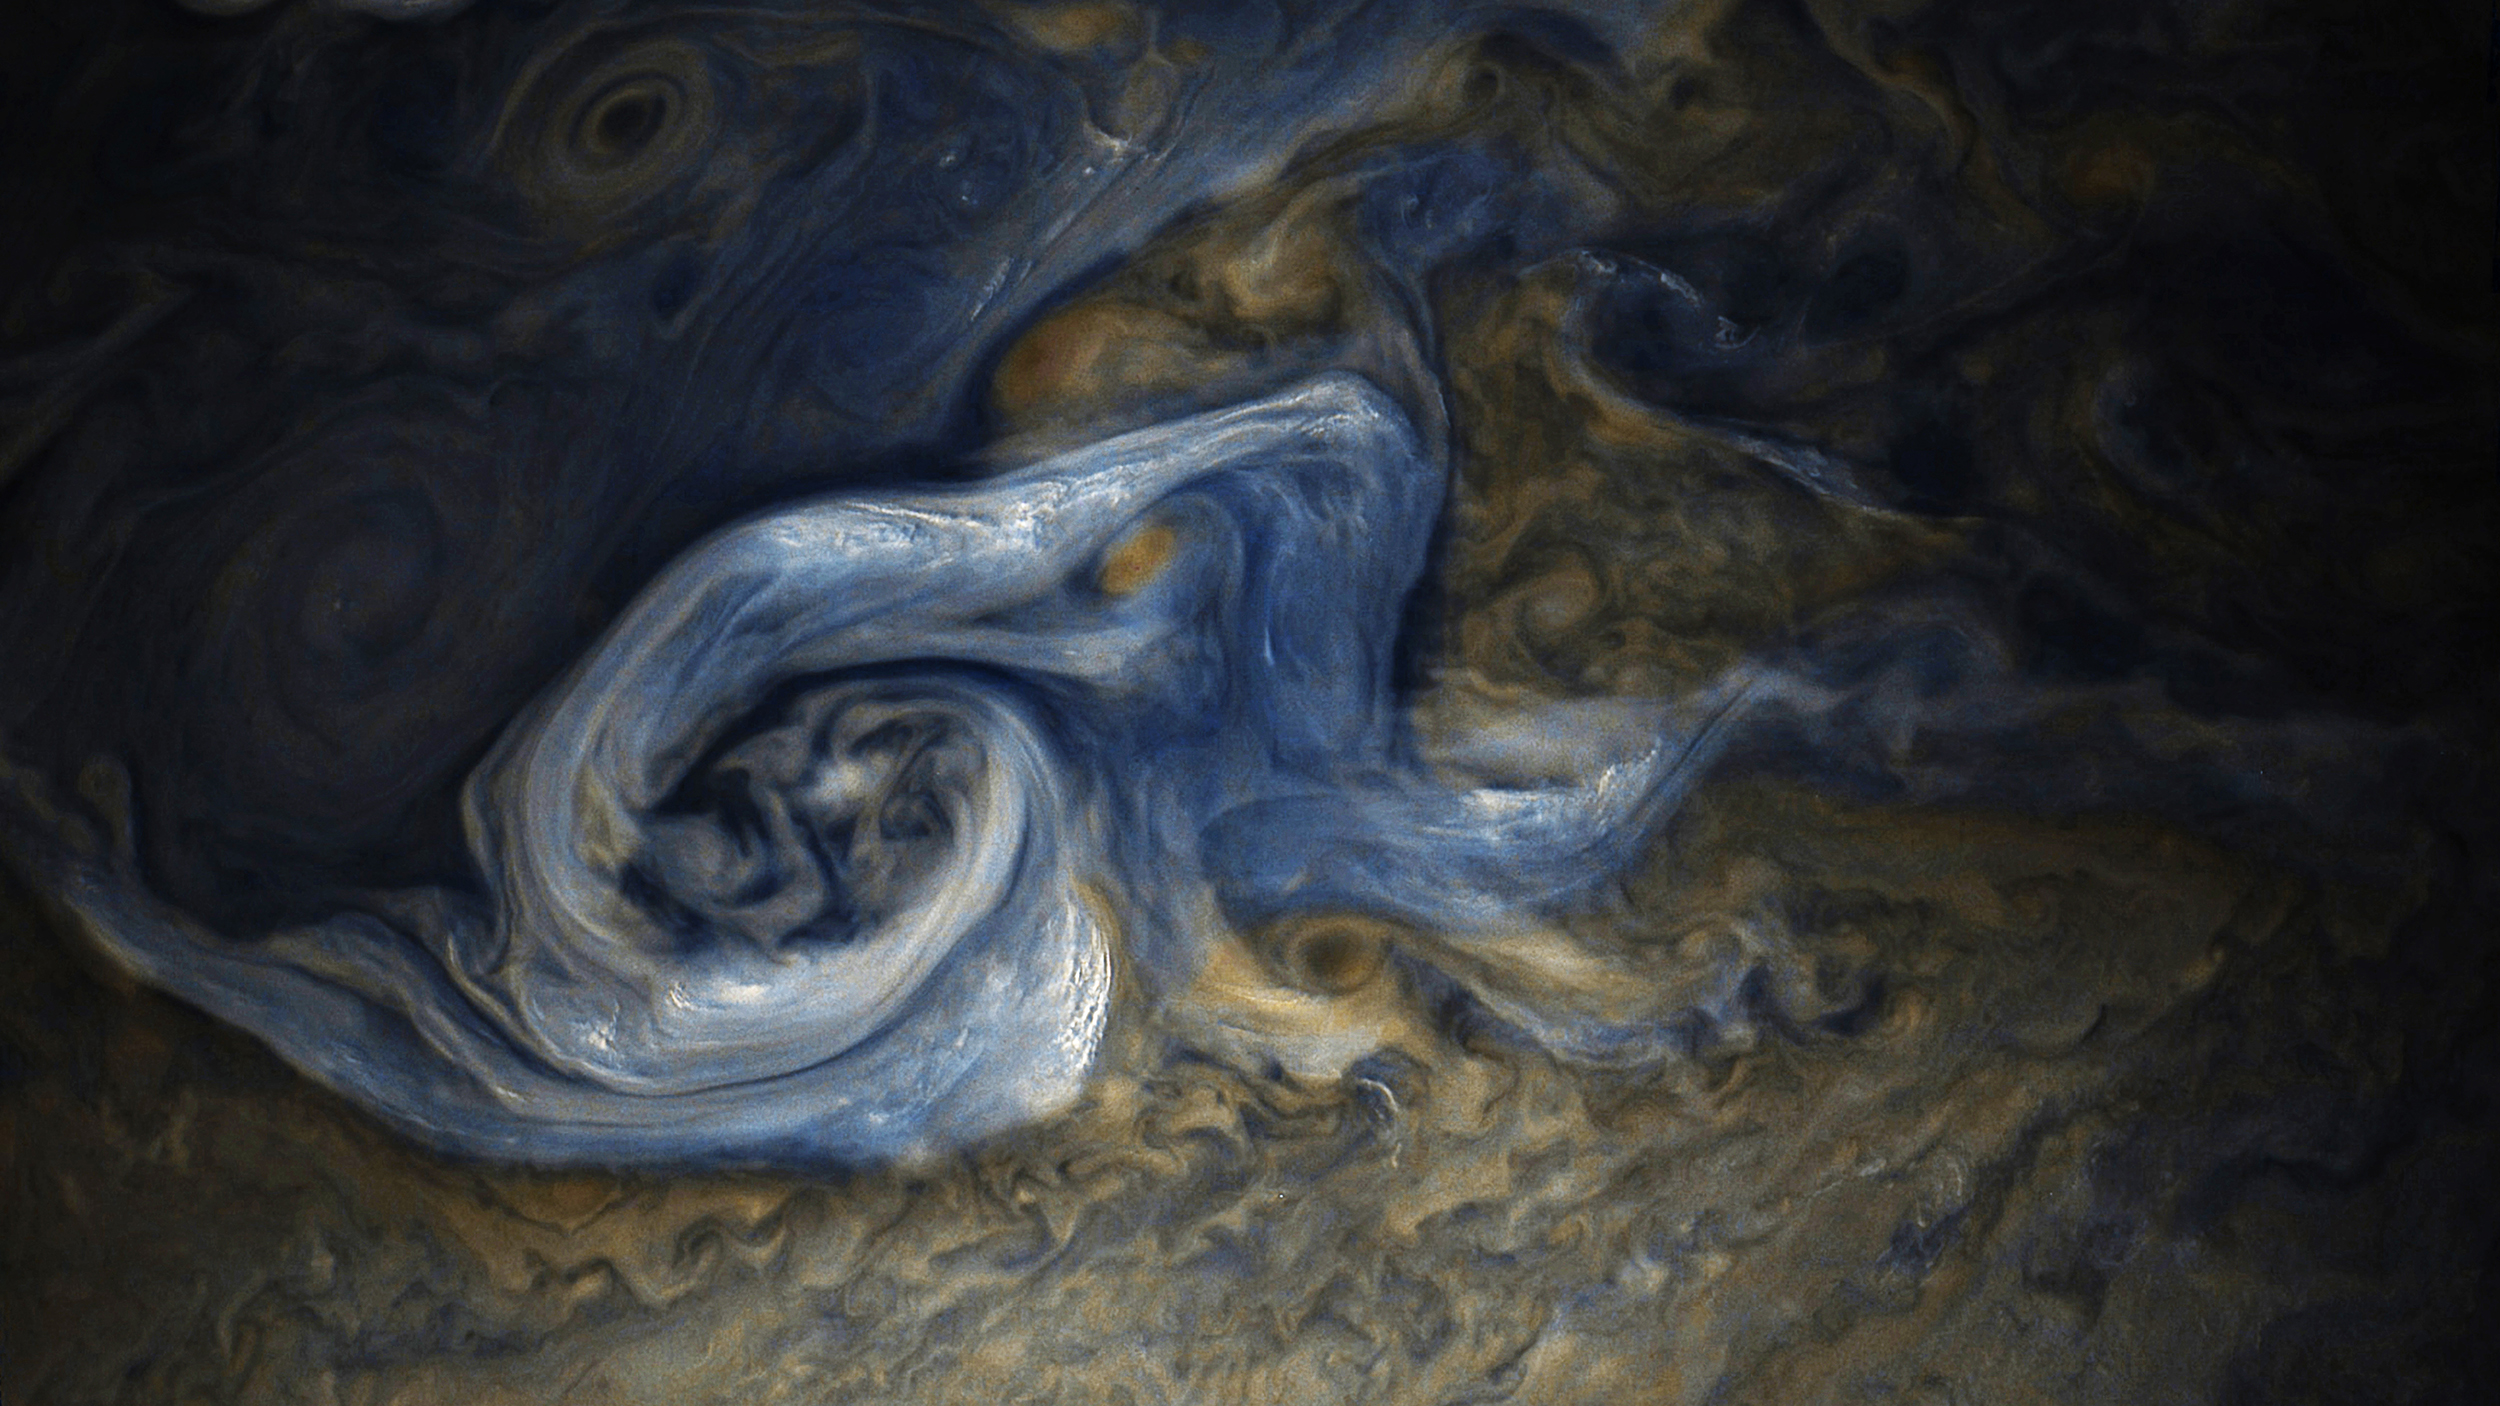 NASA shot of a Jupiter storm and info on how to get their RAW files